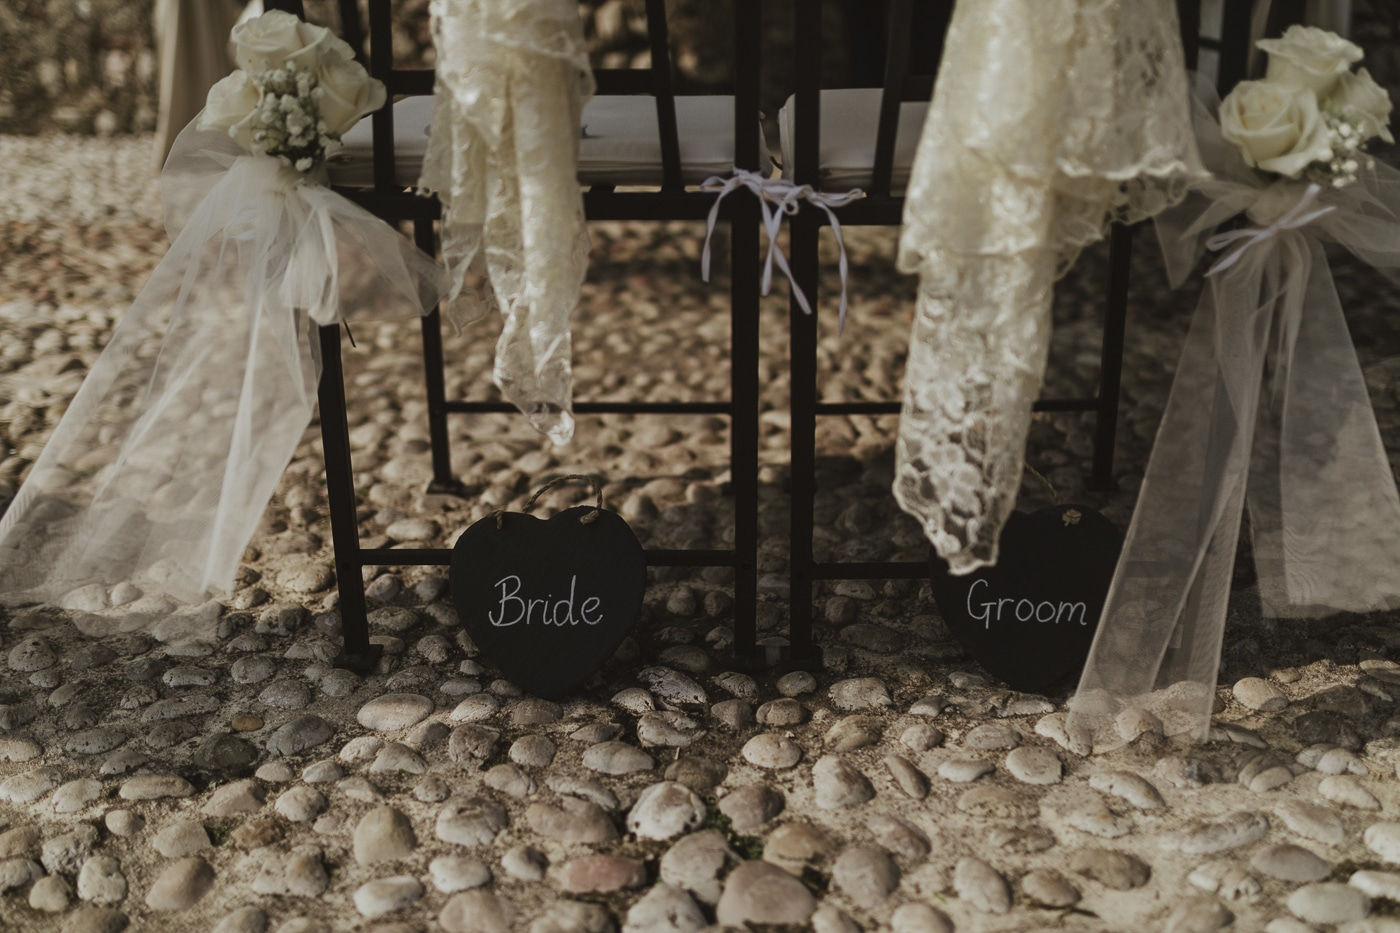 Bride and groom heart chalkboard signs at the bottom of each chair covered in lace and flowers tied to it